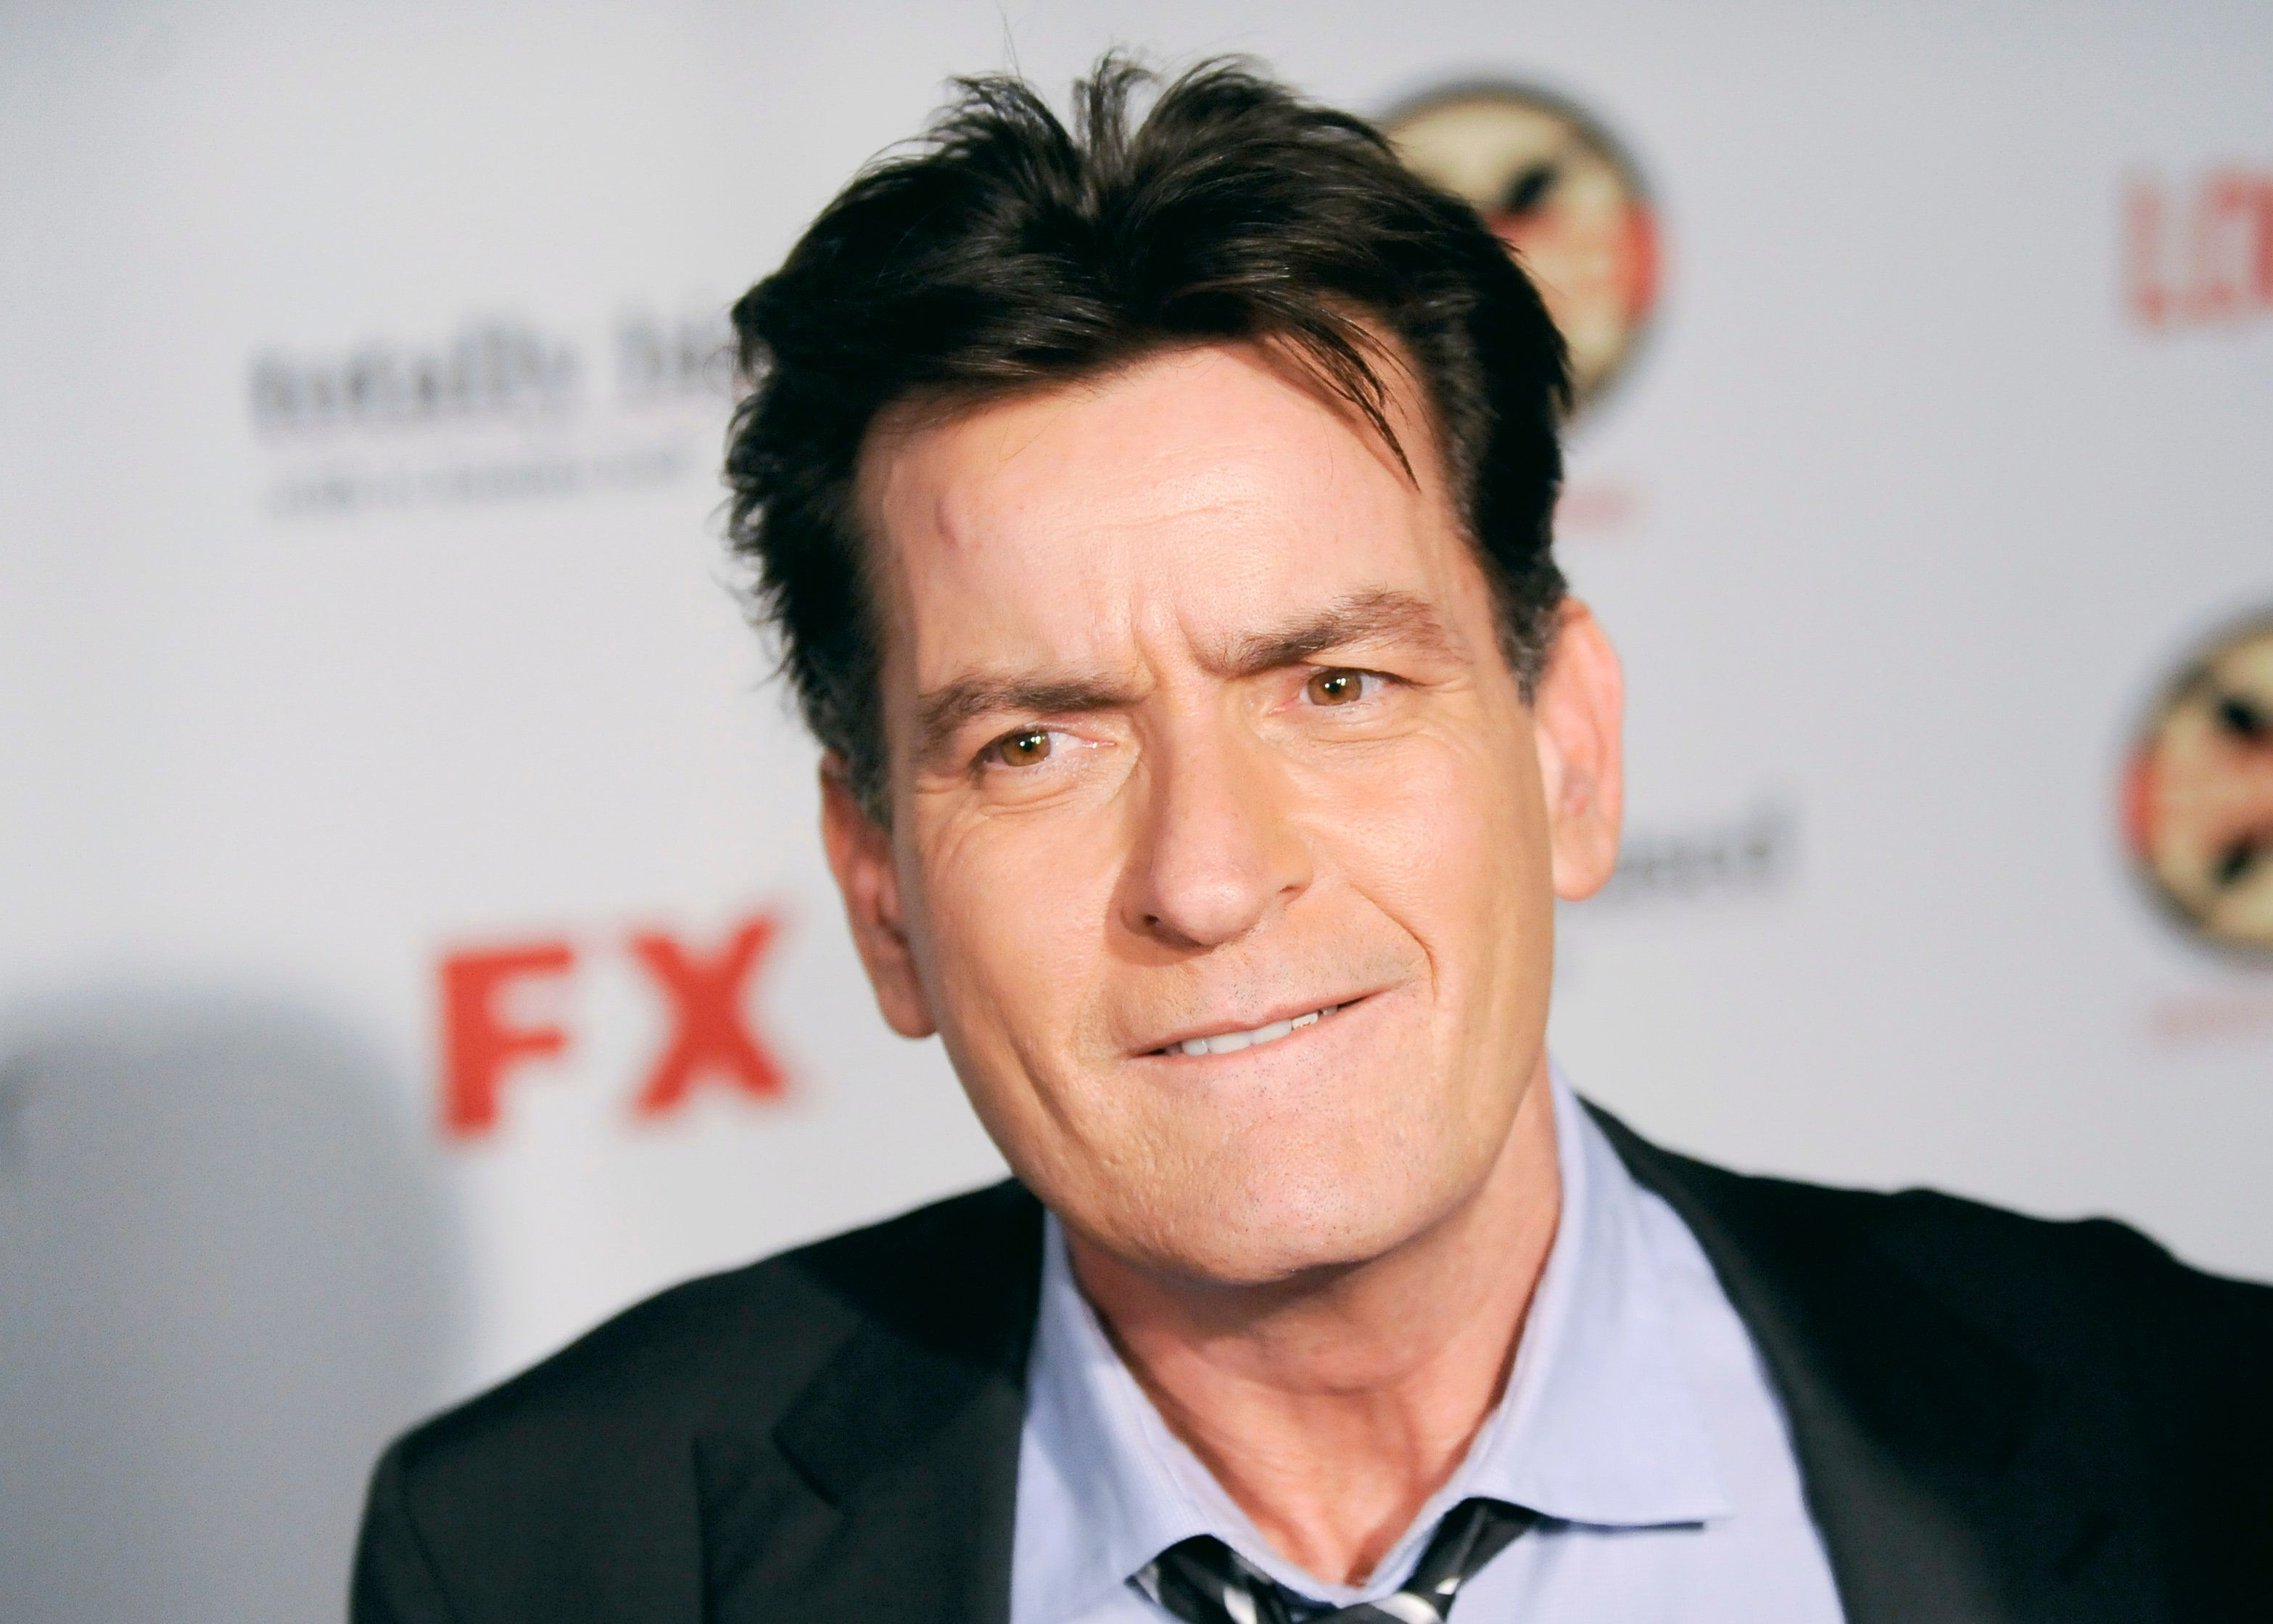 Actor Charlie Sheen arrives at the Hollywood FX Summer Comedies Party in Los Angeles, California June 26, 2012. REUTERS/Gus Ruelas (UNITED STATES - Tags: ENTERTAINMENT HEADSHOT)